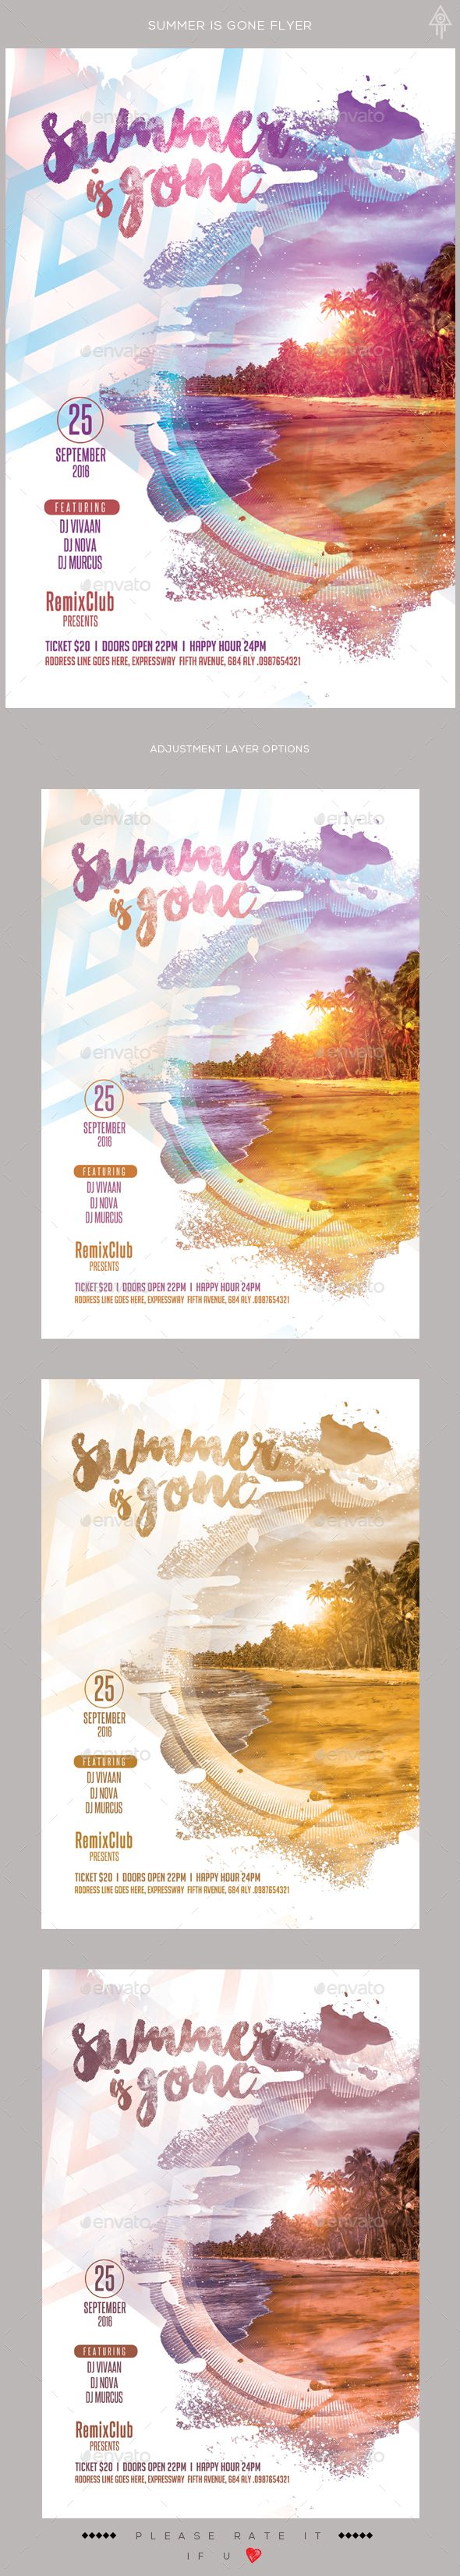 Summer Is Gone Flyer Template PSD. Download here: https://graphicriver.net/item/summer-is-gone-flyer/17192746?ref=ksioks